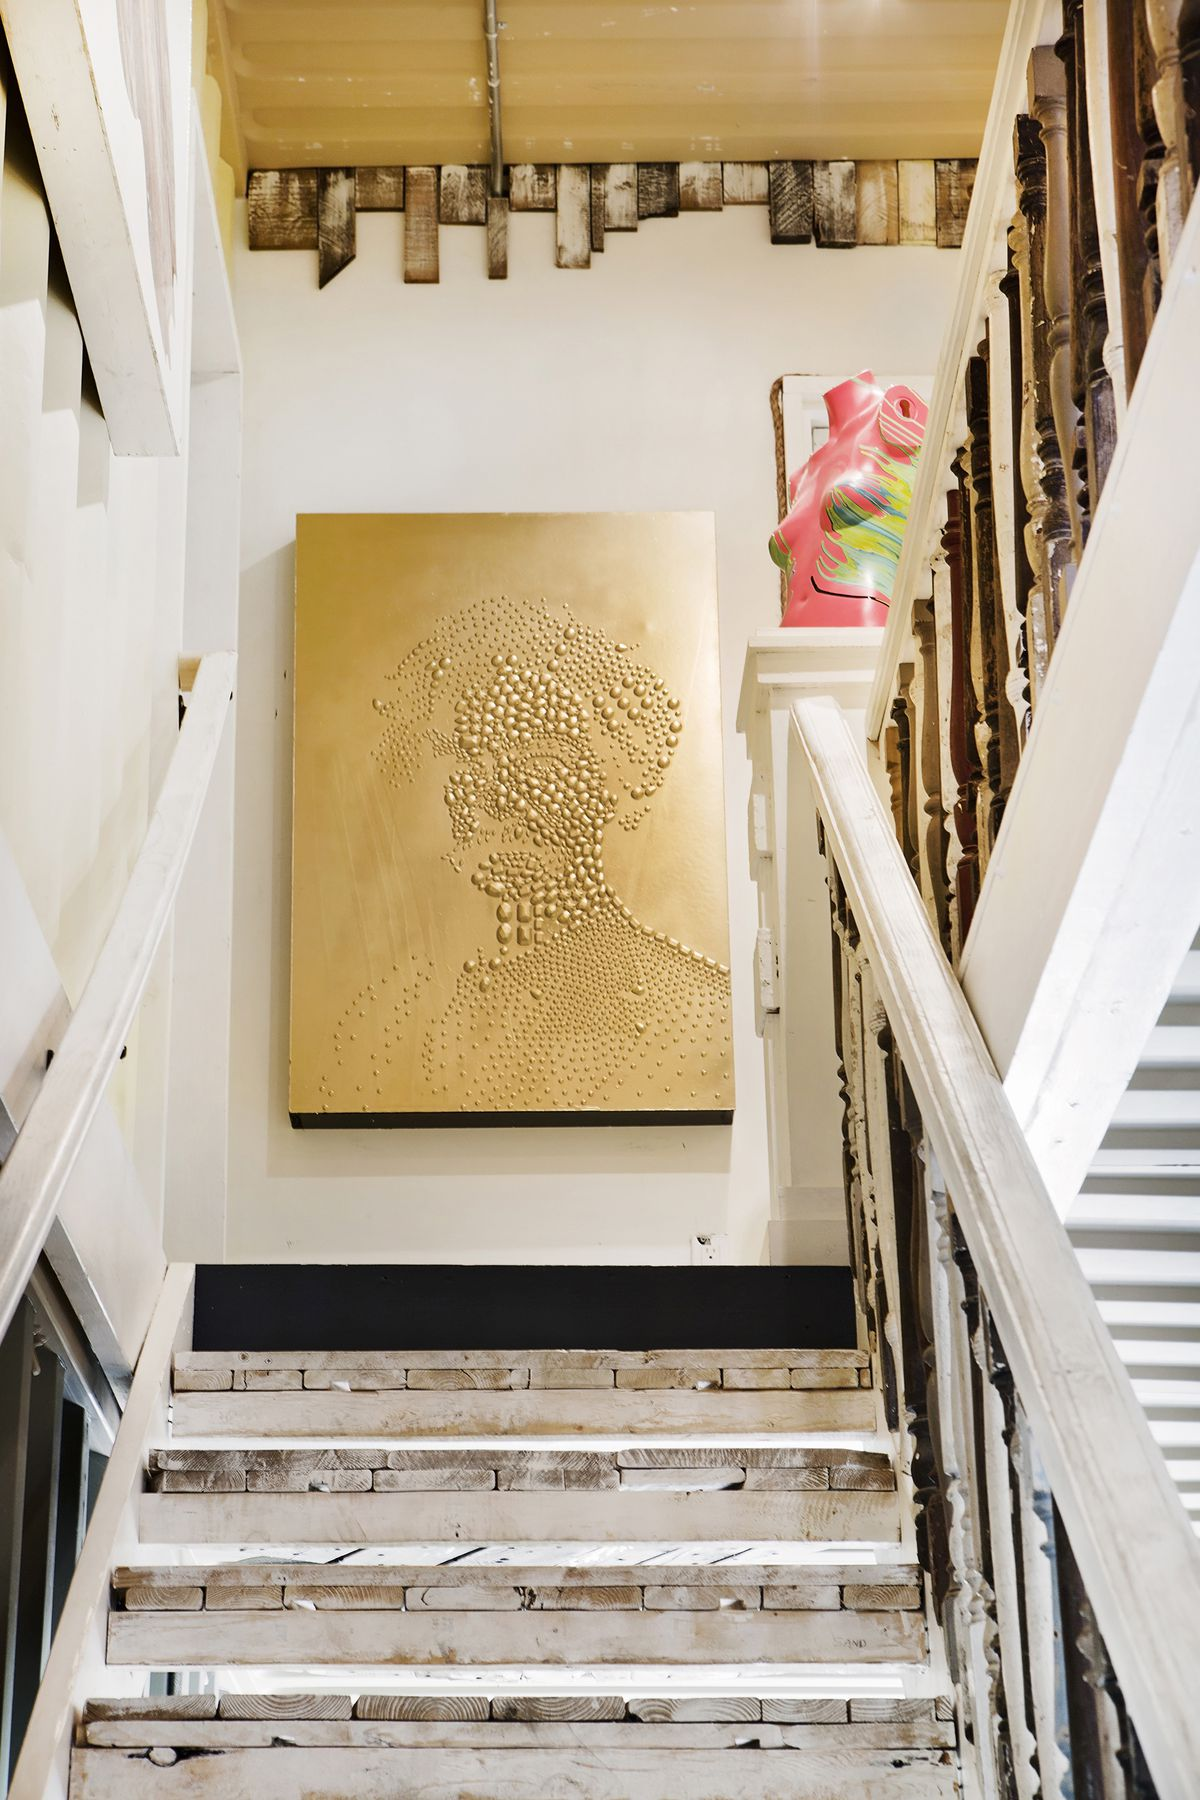 In the living room, two large black-and-white artworks show a female and male figures; random pieces of wood panel the basement, and it's all painted white; a long staircase has mismatched, salvaged balusters in the railing, and an abstract portrait of Ma